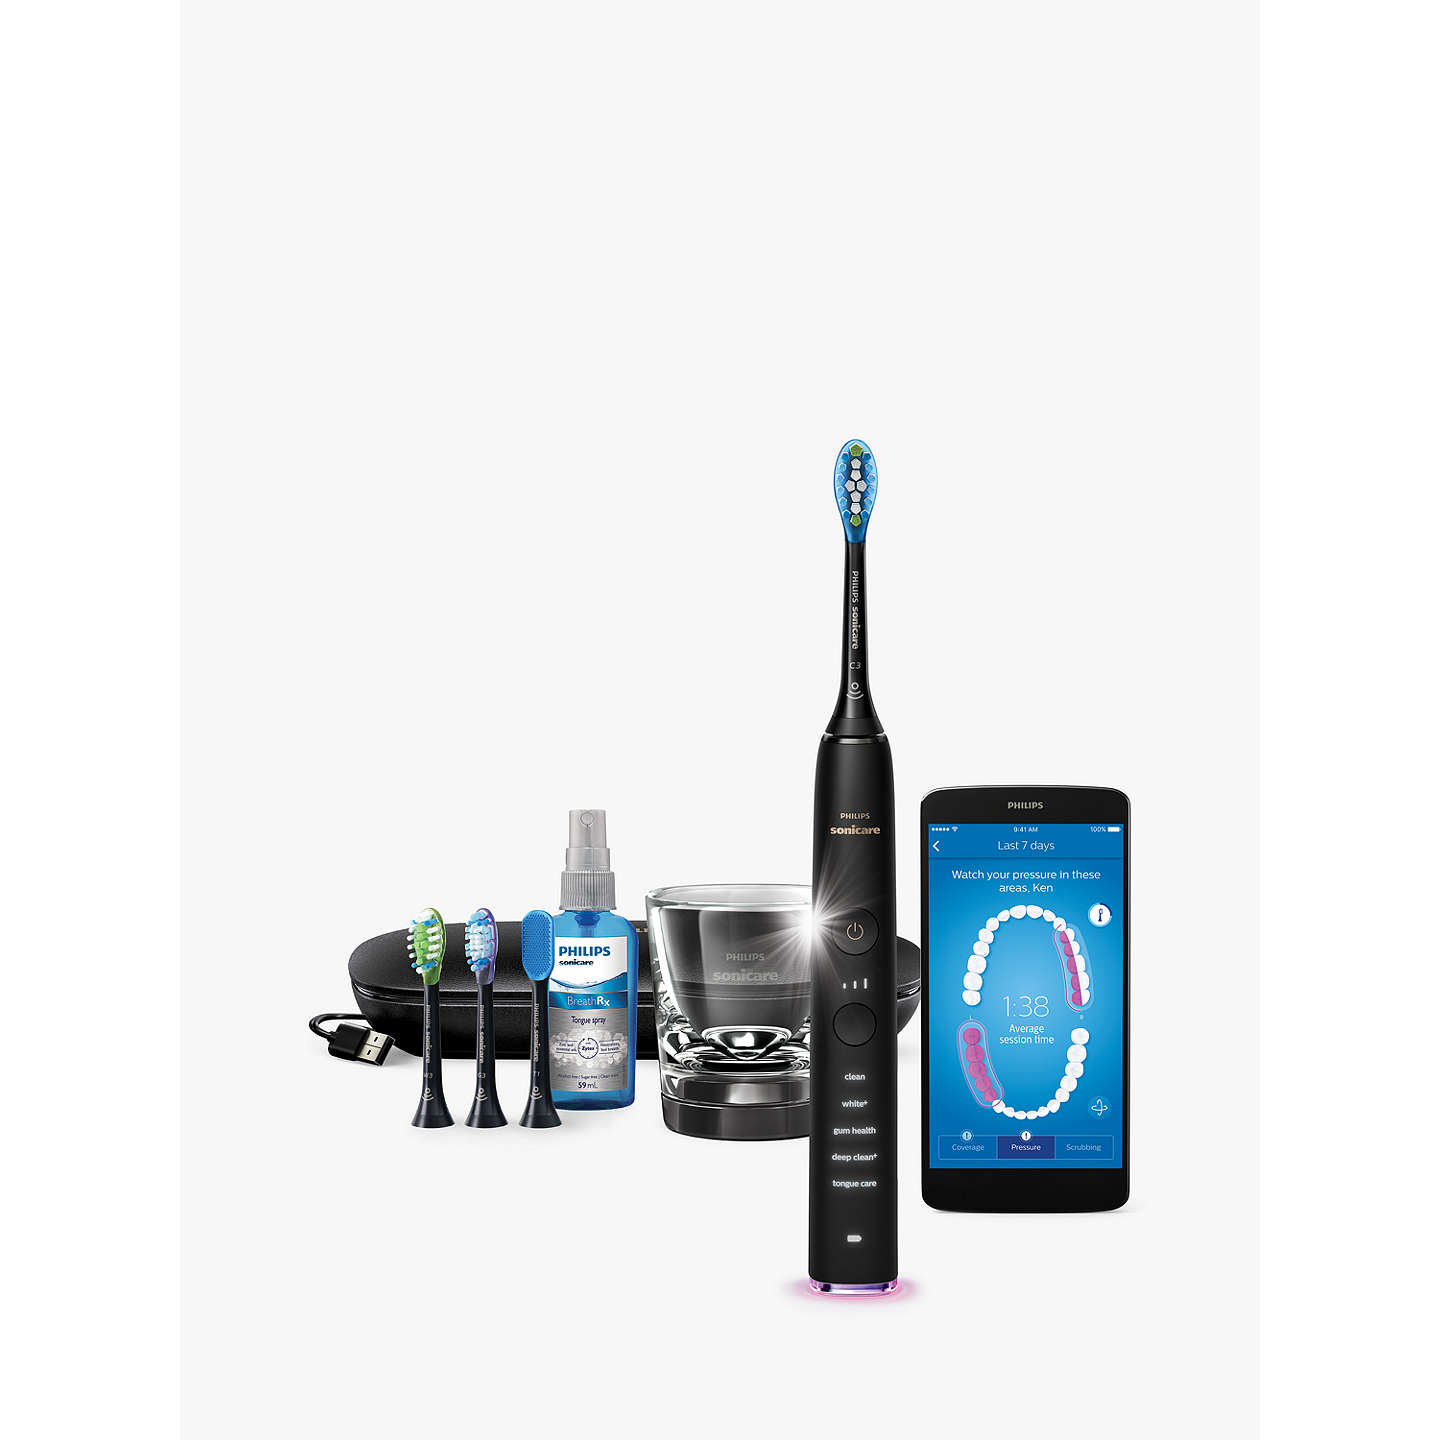 BuyPhilips HX9924/14 DiamondClean Smart Sonic Electric Toothbrush with App, Black Online at johnlewis.com